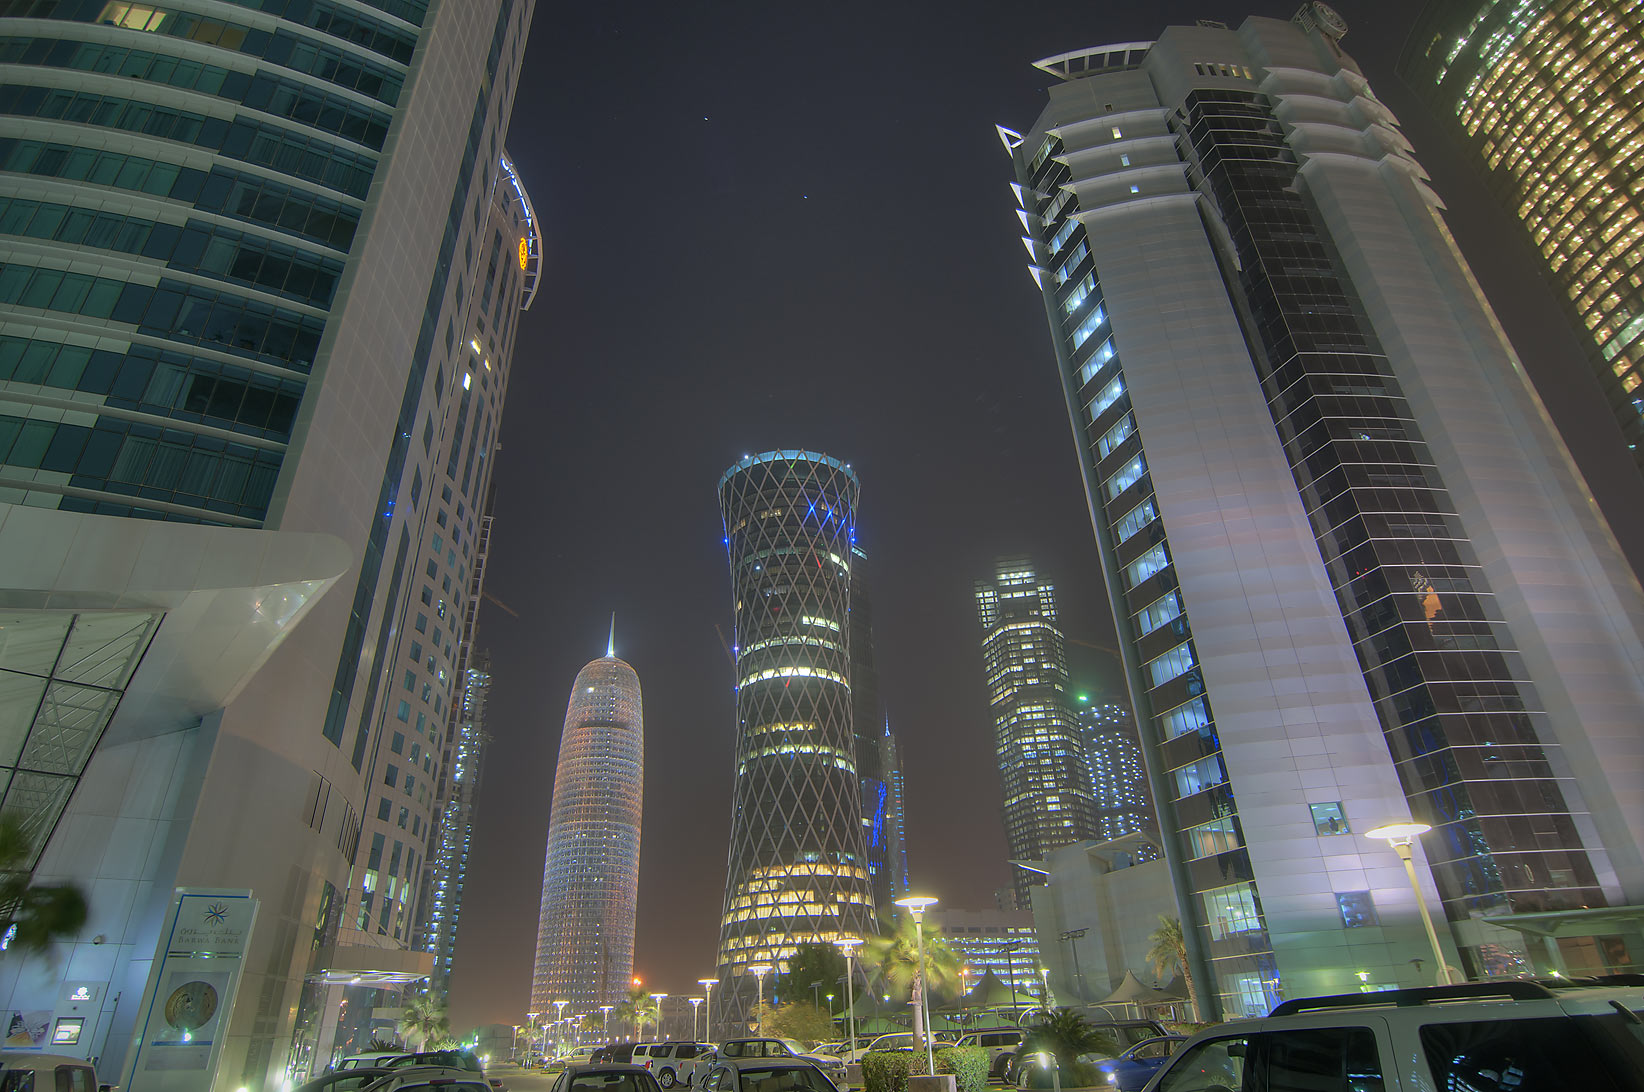 Tornado Tower and and Ministry of Commerce in...area of Al Fardan Towers. Doha, Qatar